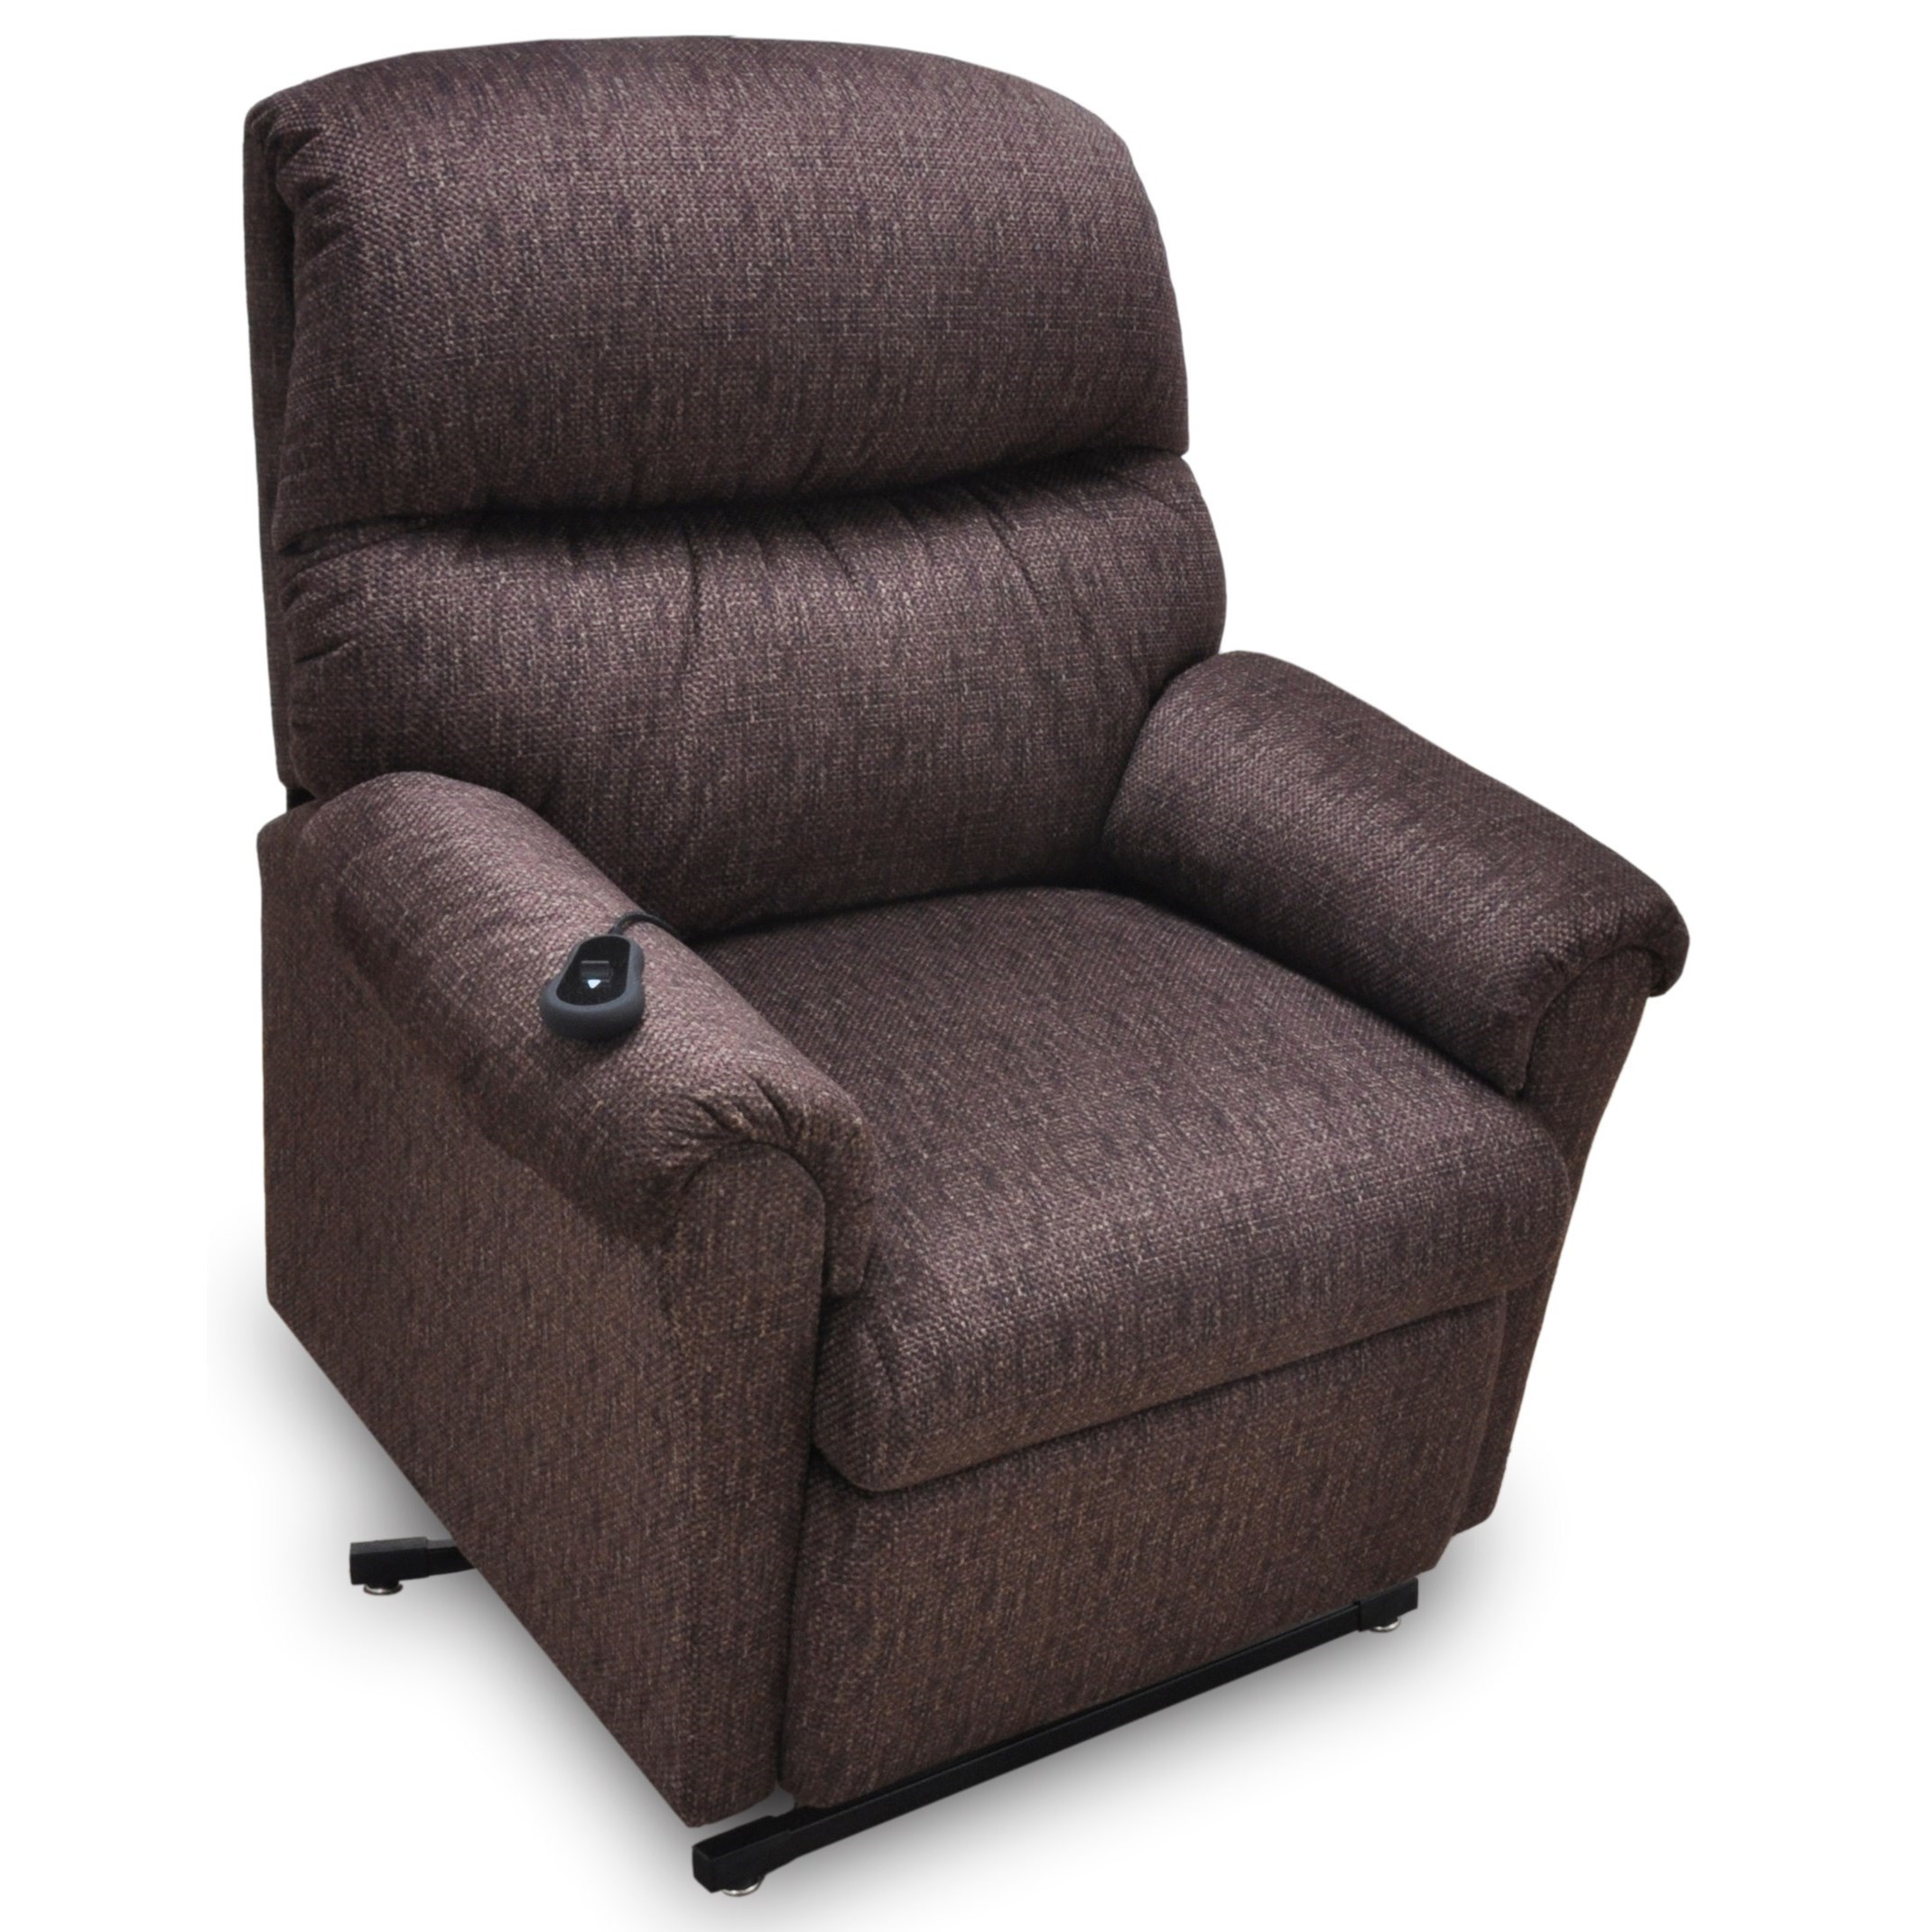 Franklin Recliners Mable Lift Recliner by Franklin at Lagniappe Home Store